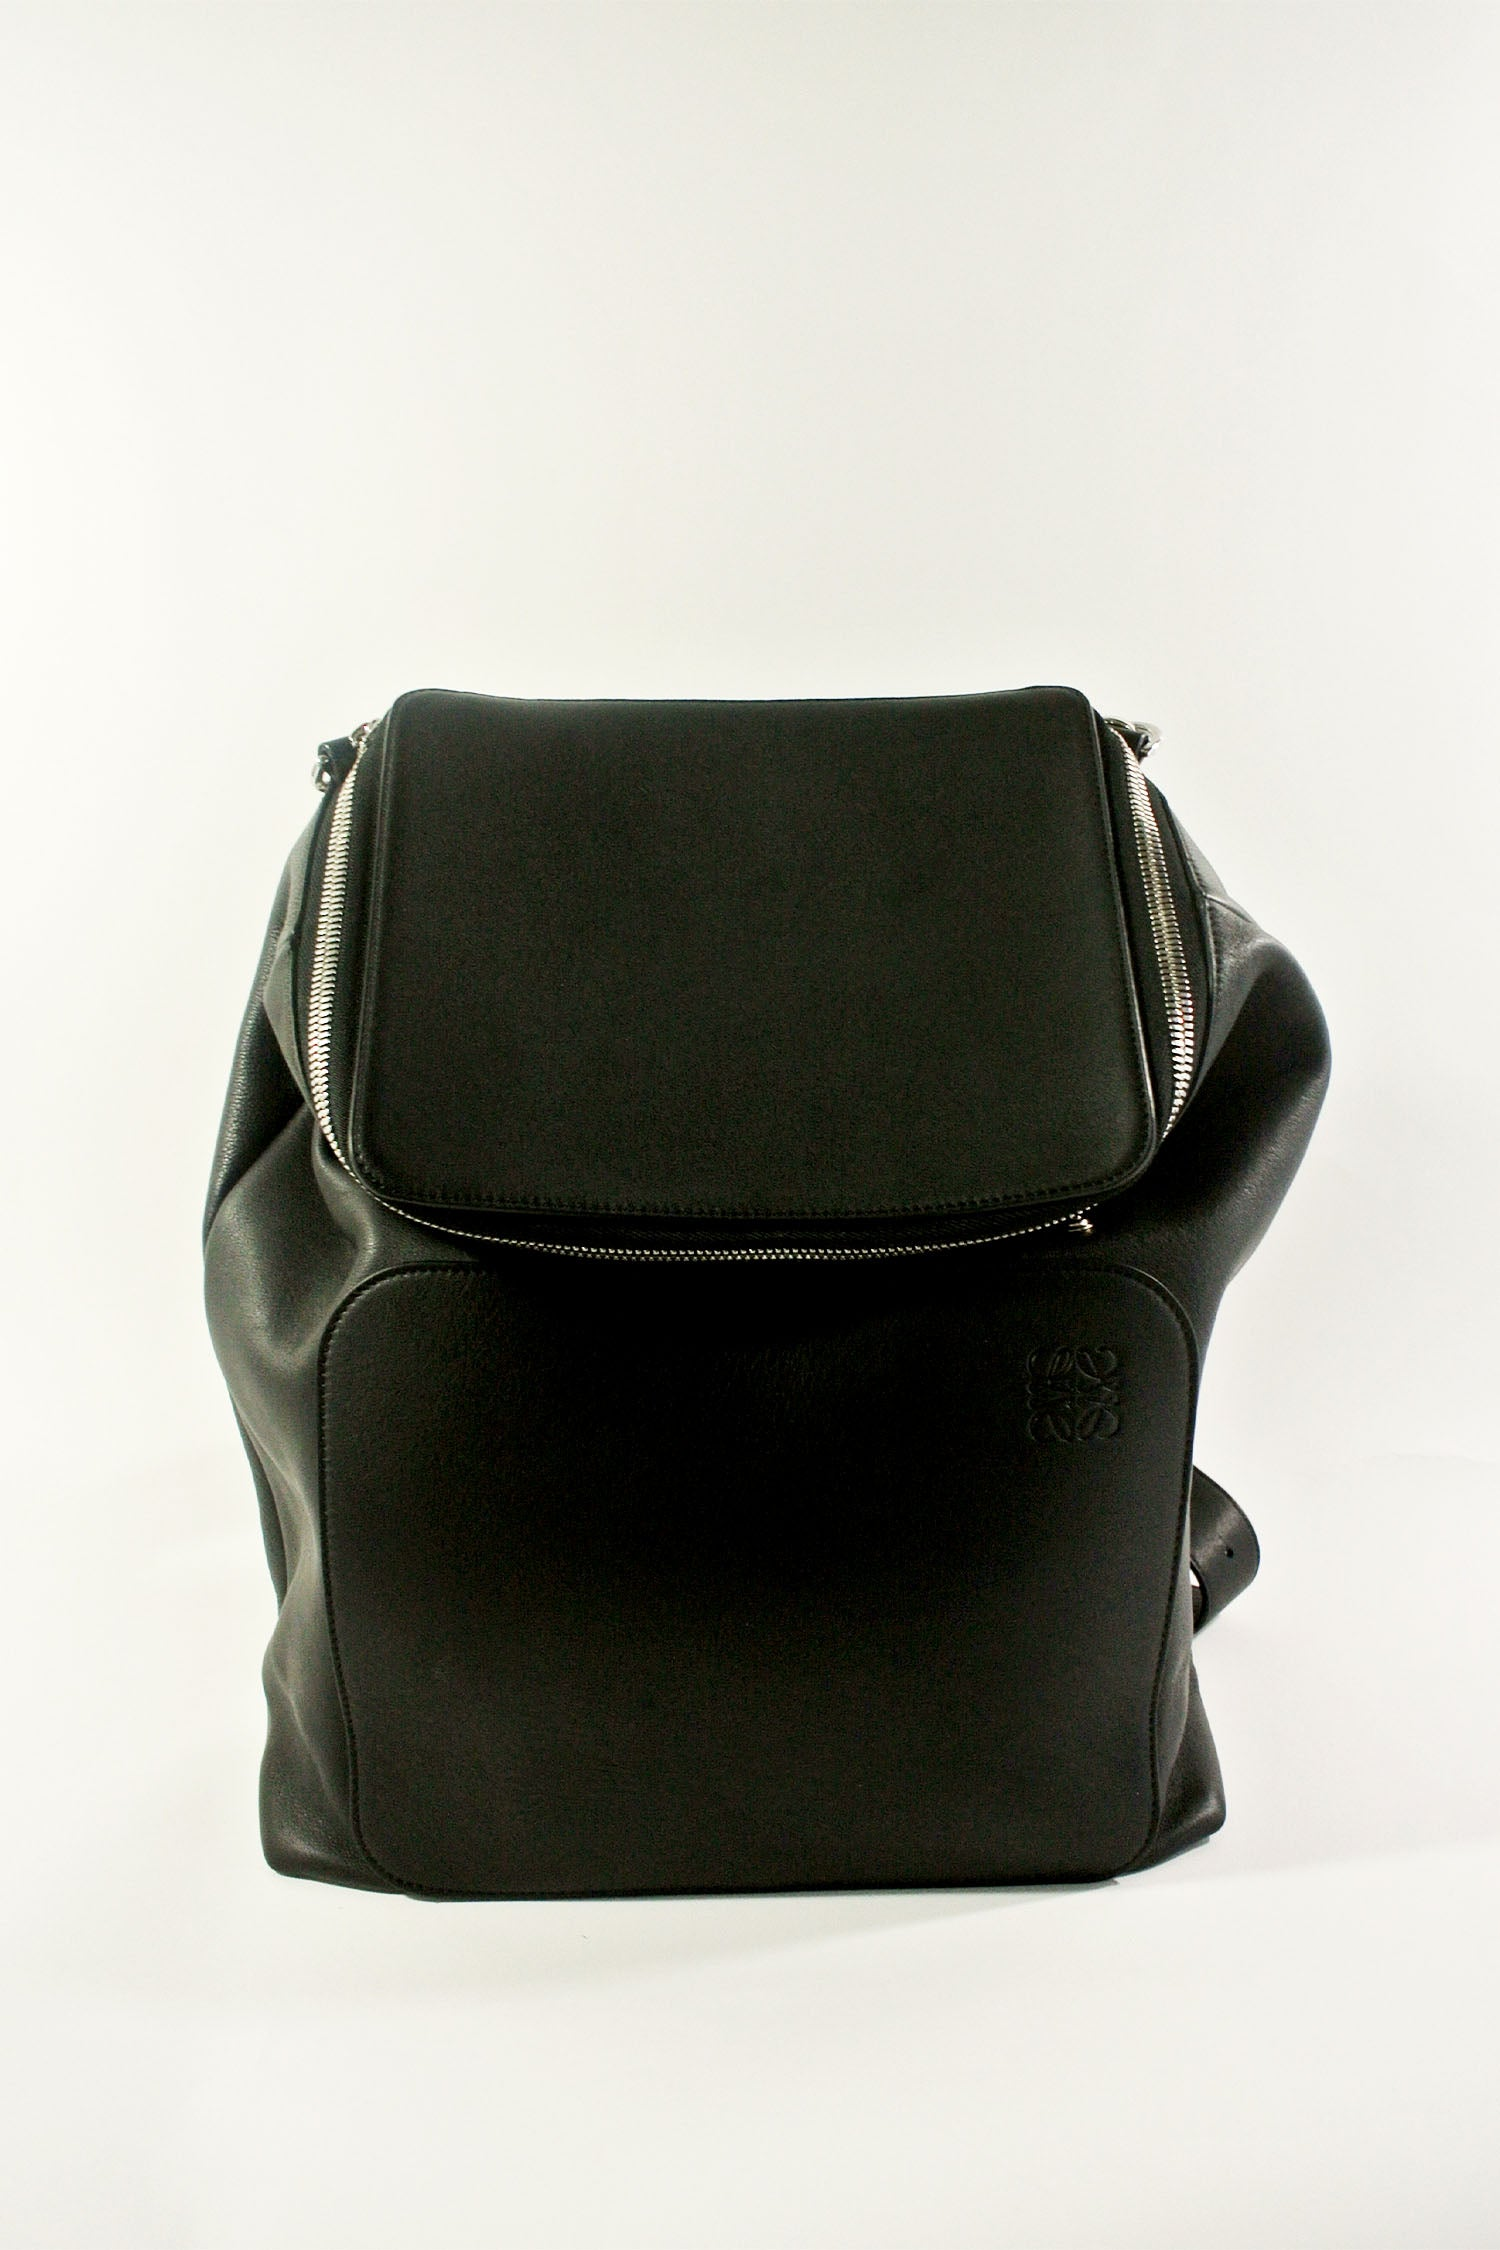 Loewe Leather Goya Backpack